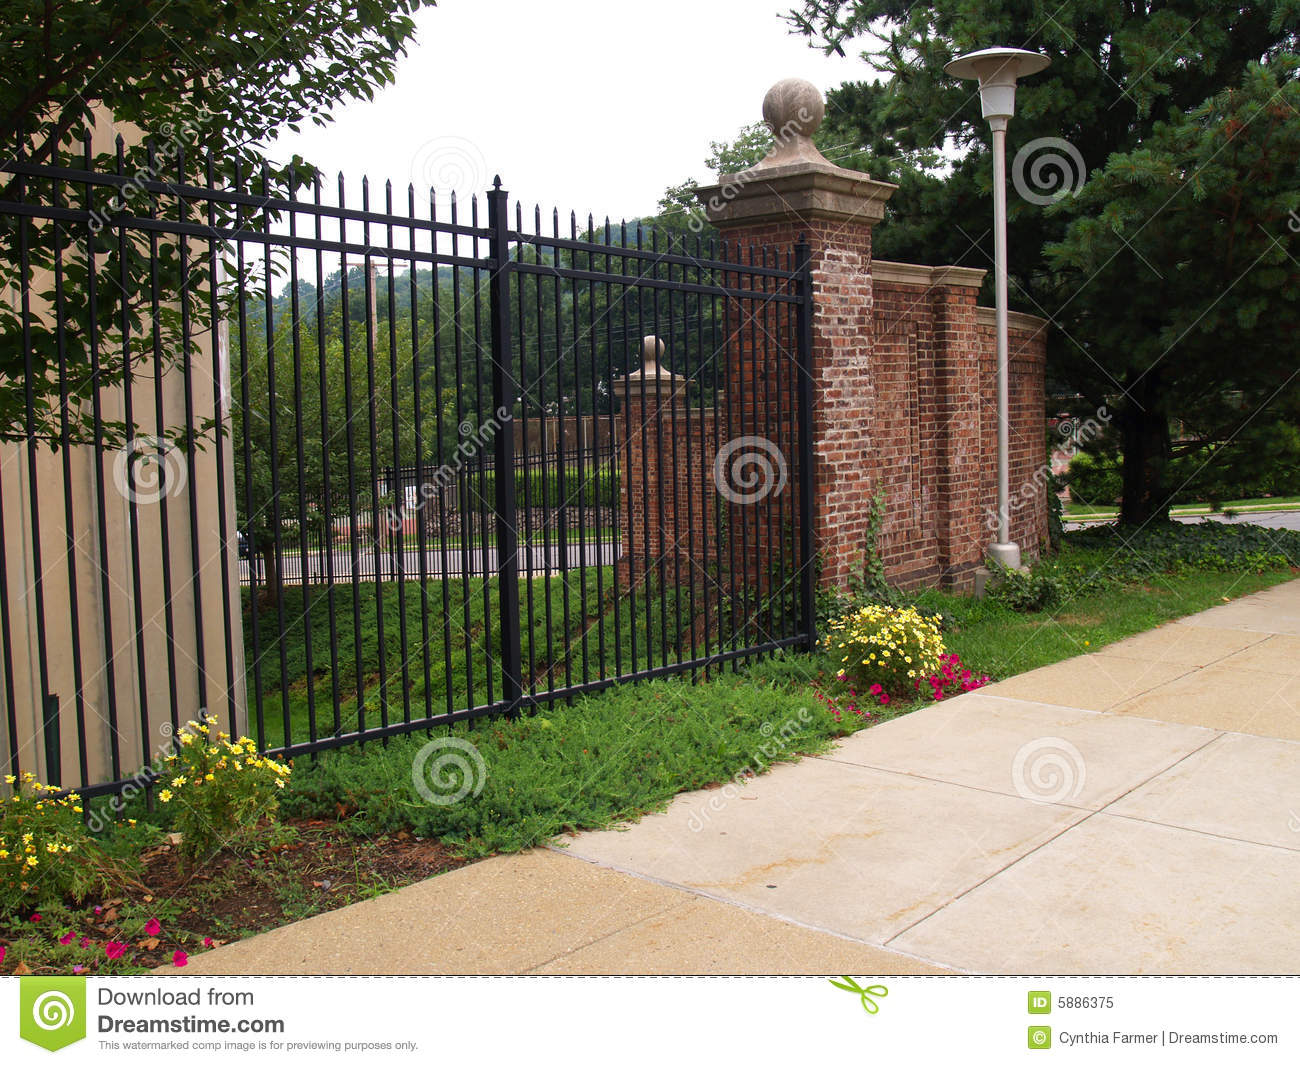 Picture of: 85 070 Black Fence Photos Free Royalty Free Stock Photos From Dreamstime